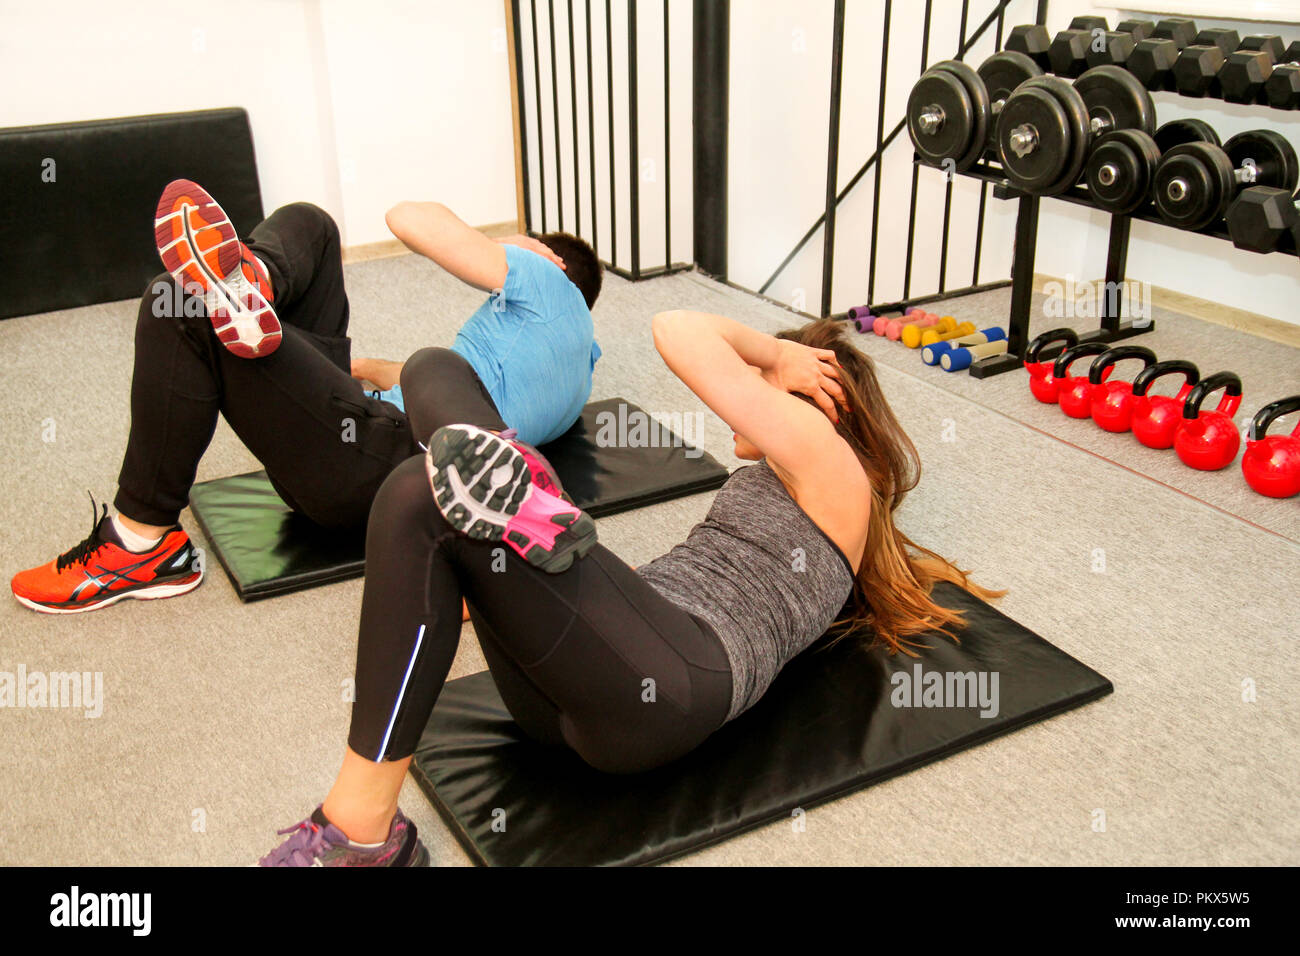 Sporty people doing stomach abs exercises at gym club. Happy fit young pretty couple in training working out stomach on mat in fitness studio. - Stock Image